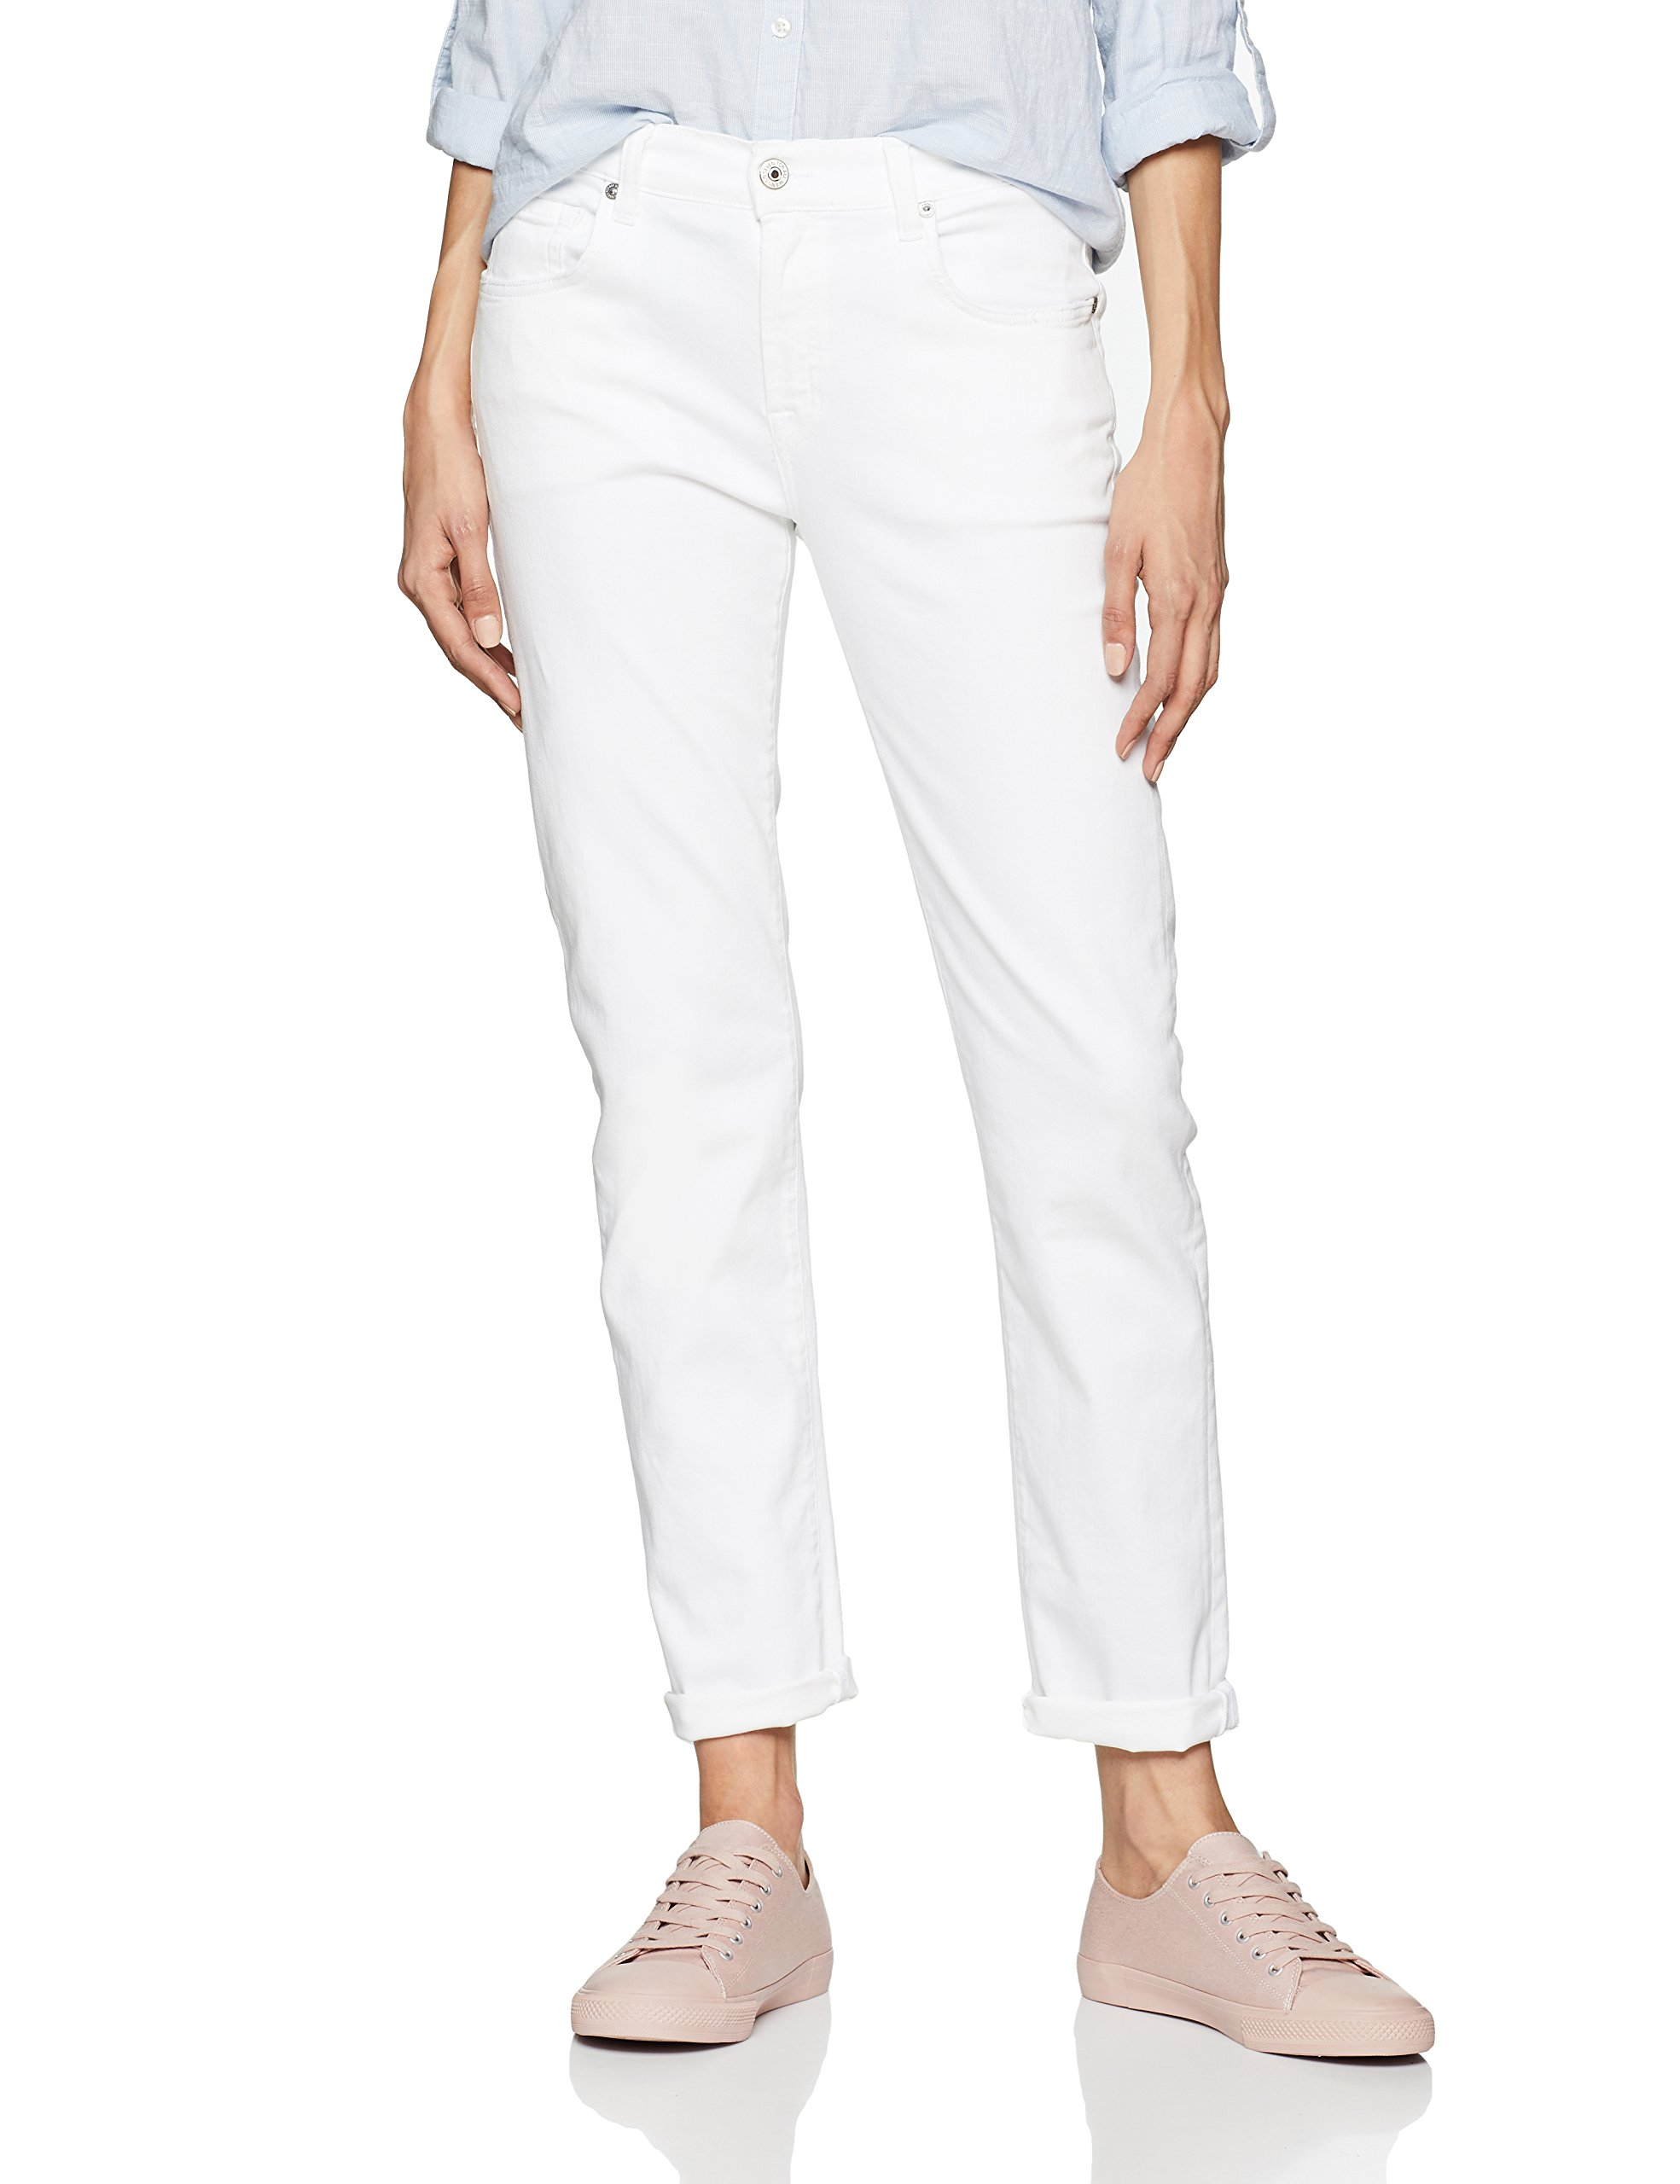 Fabricant29Femme Skinny White Mankind For 0wgW29 Relaxed Sagl Seven BoyfriendBlancpure International Jean l29taille All pzSUMVq